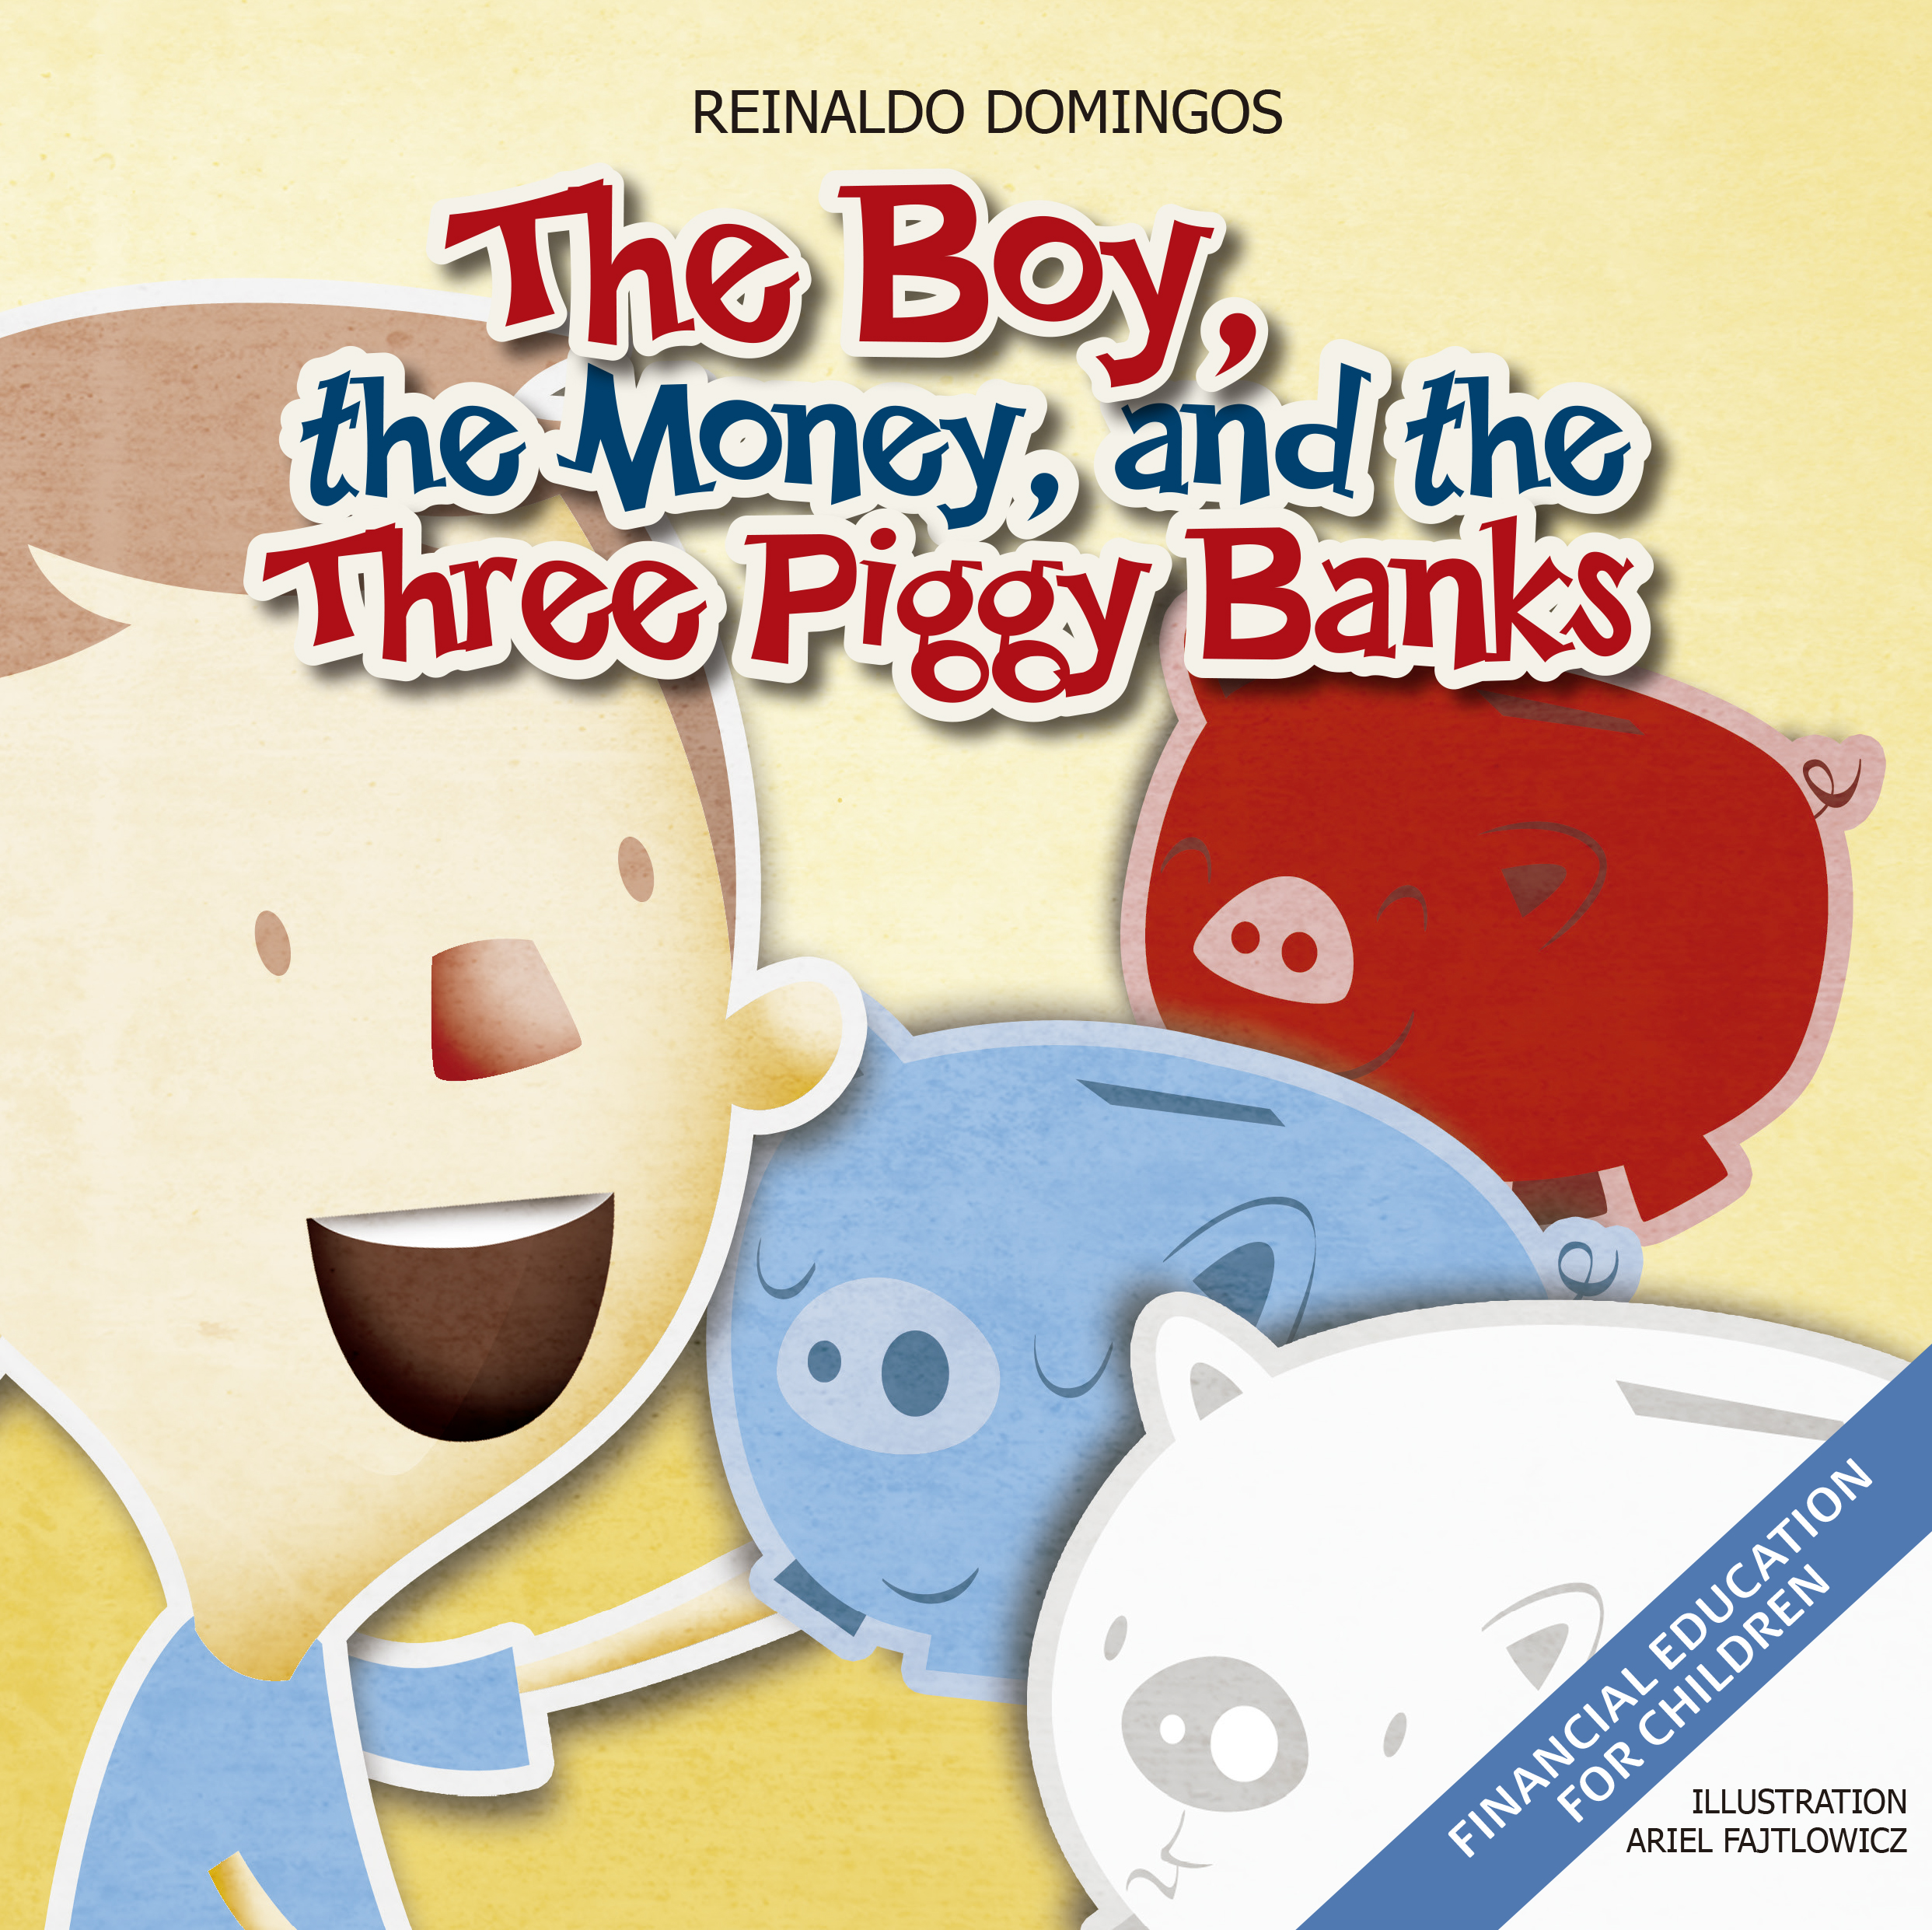 The Boy, the Money and the Three Piggy Banks